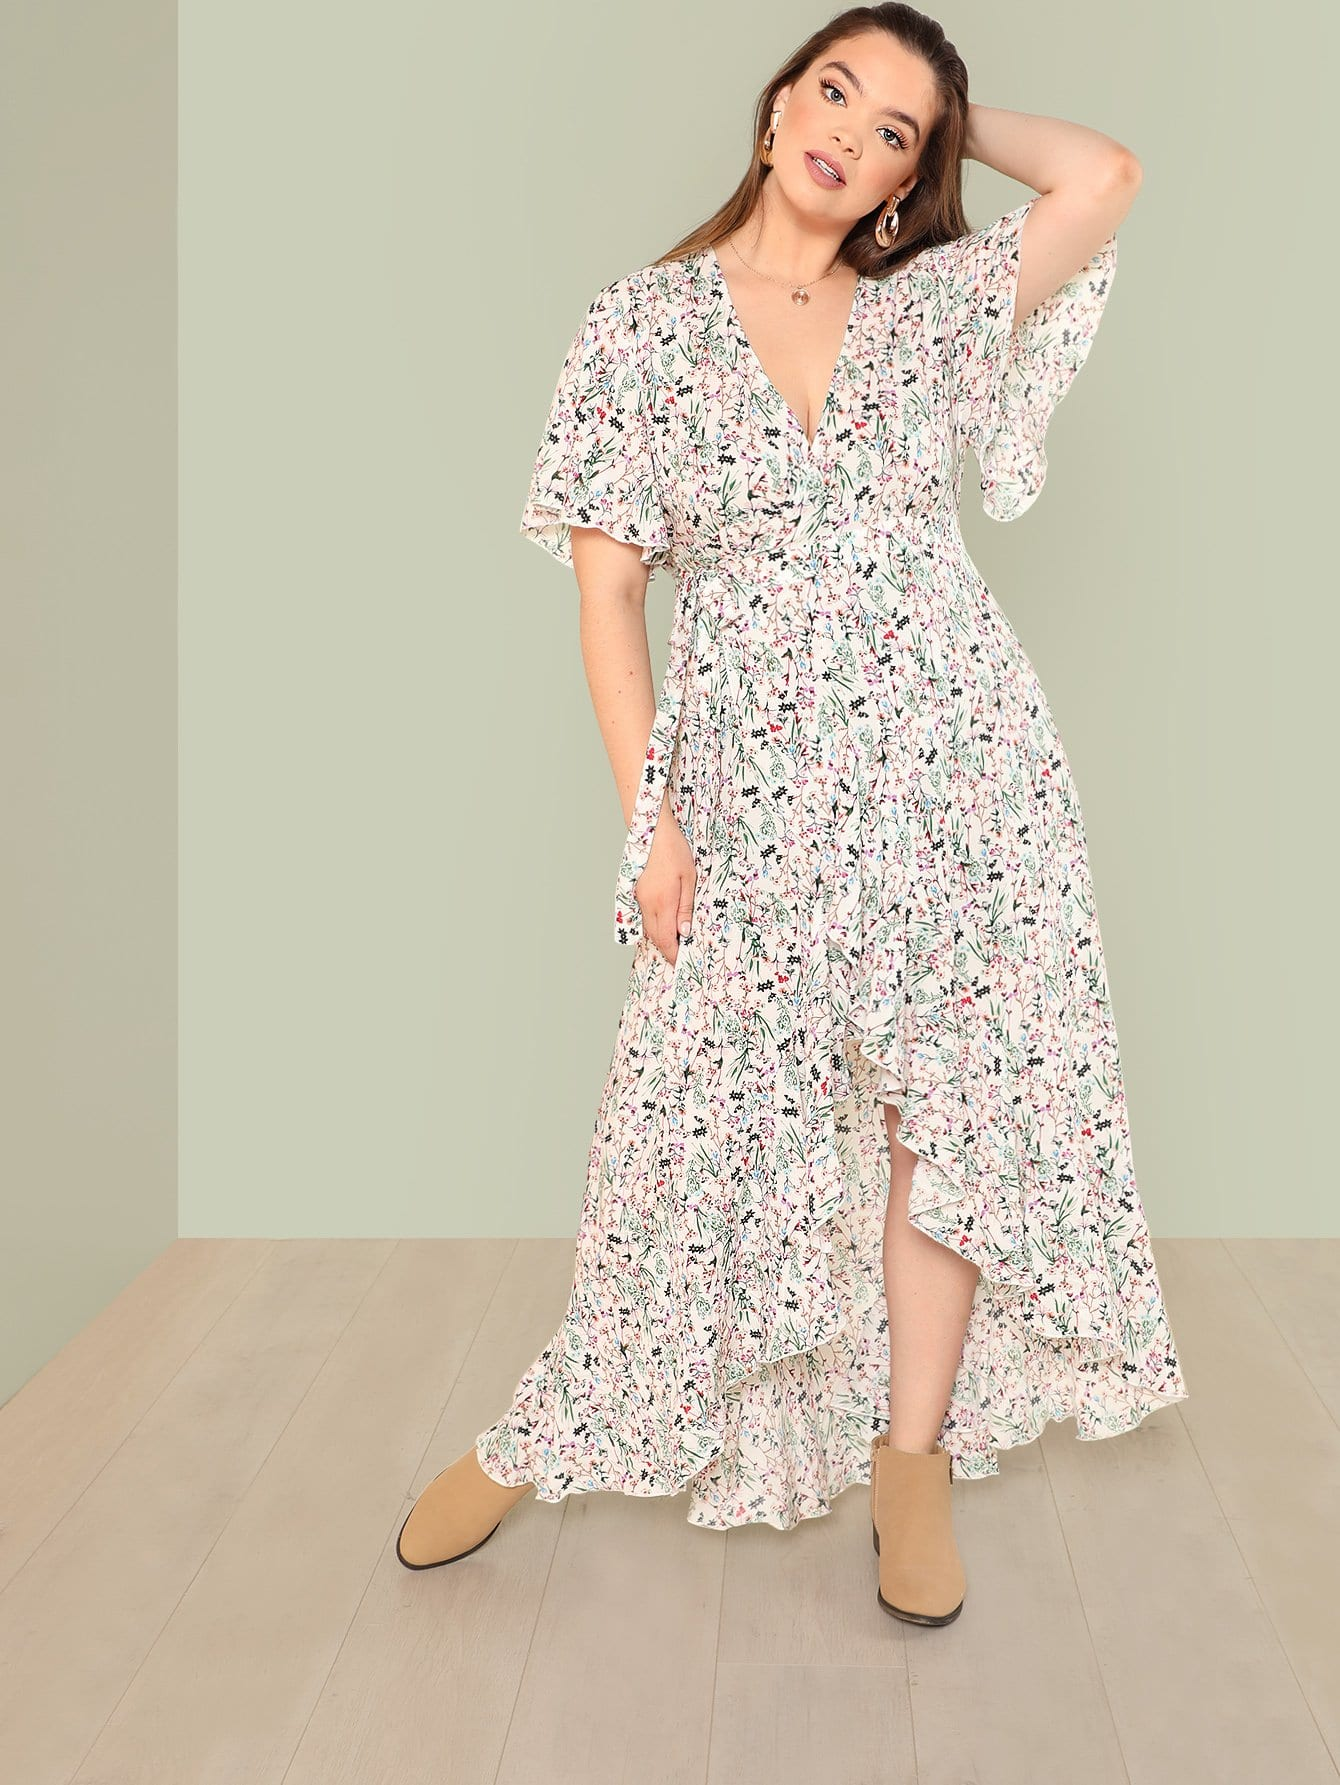 Puff Sleeve Floral Dress floral print puff sleeve fit